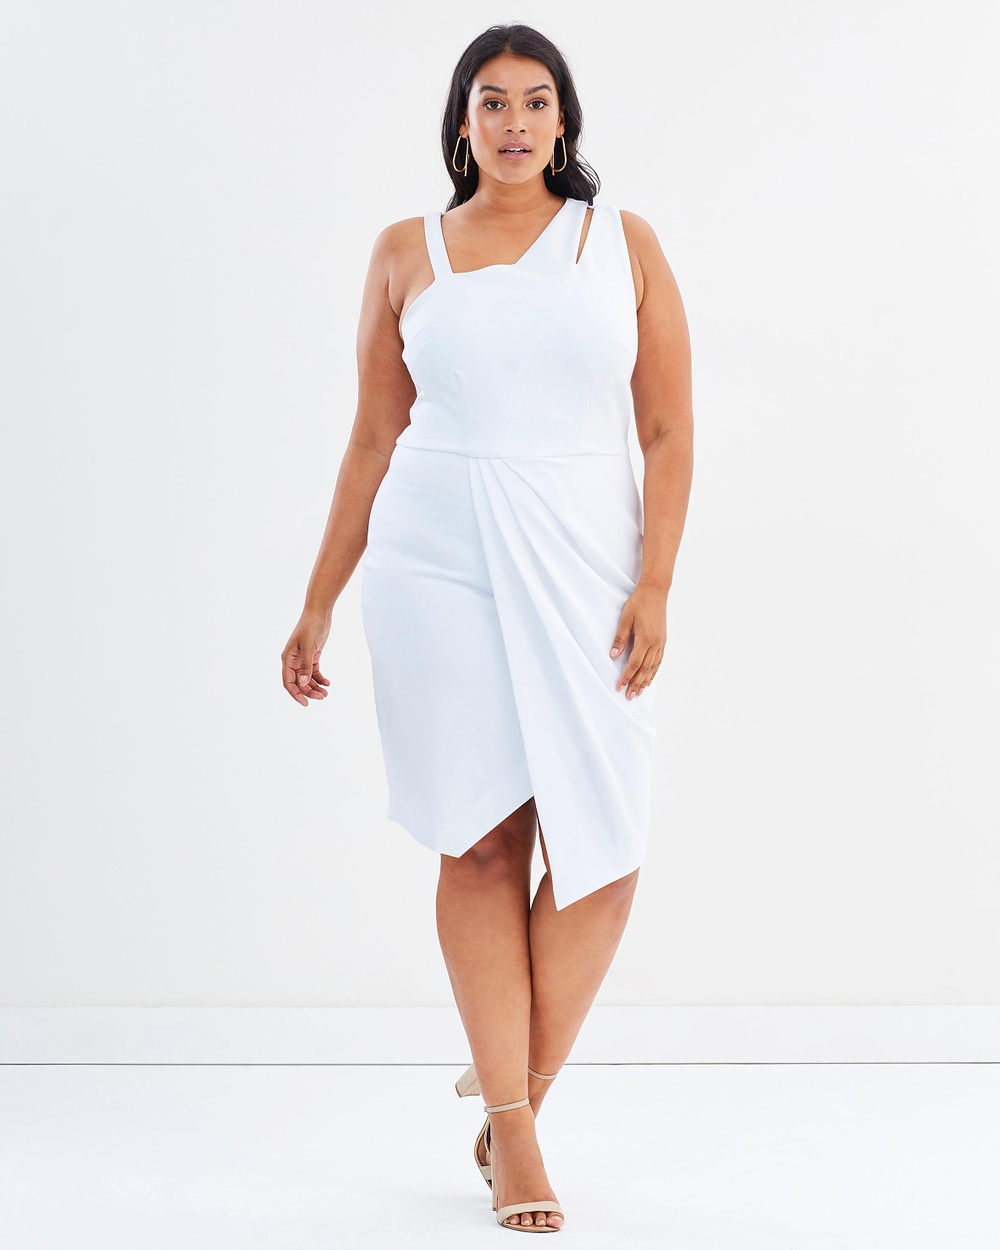 Rebel Wilson x Angels Asymmetrical Cut Out Dress Dresses White Asymmetrical Cut-Out Dress